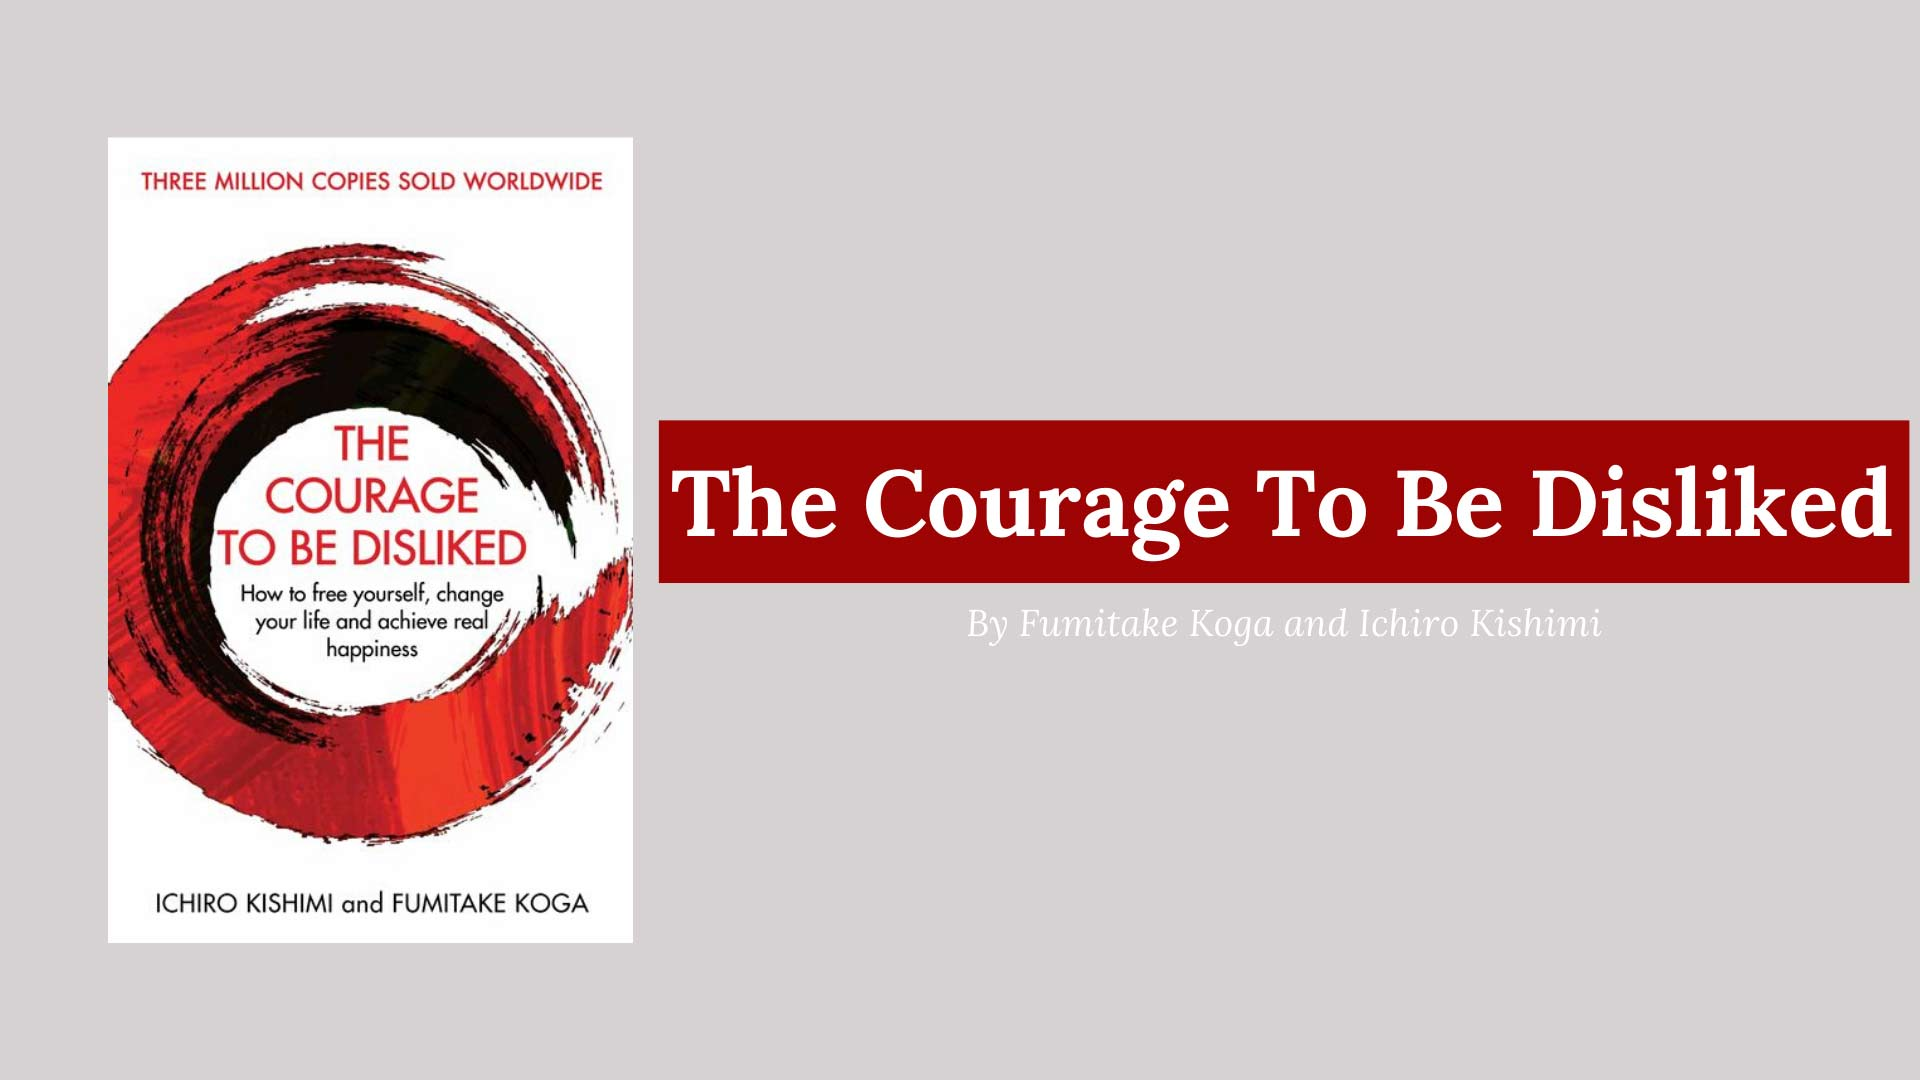 picture of a book the courage to be disliked